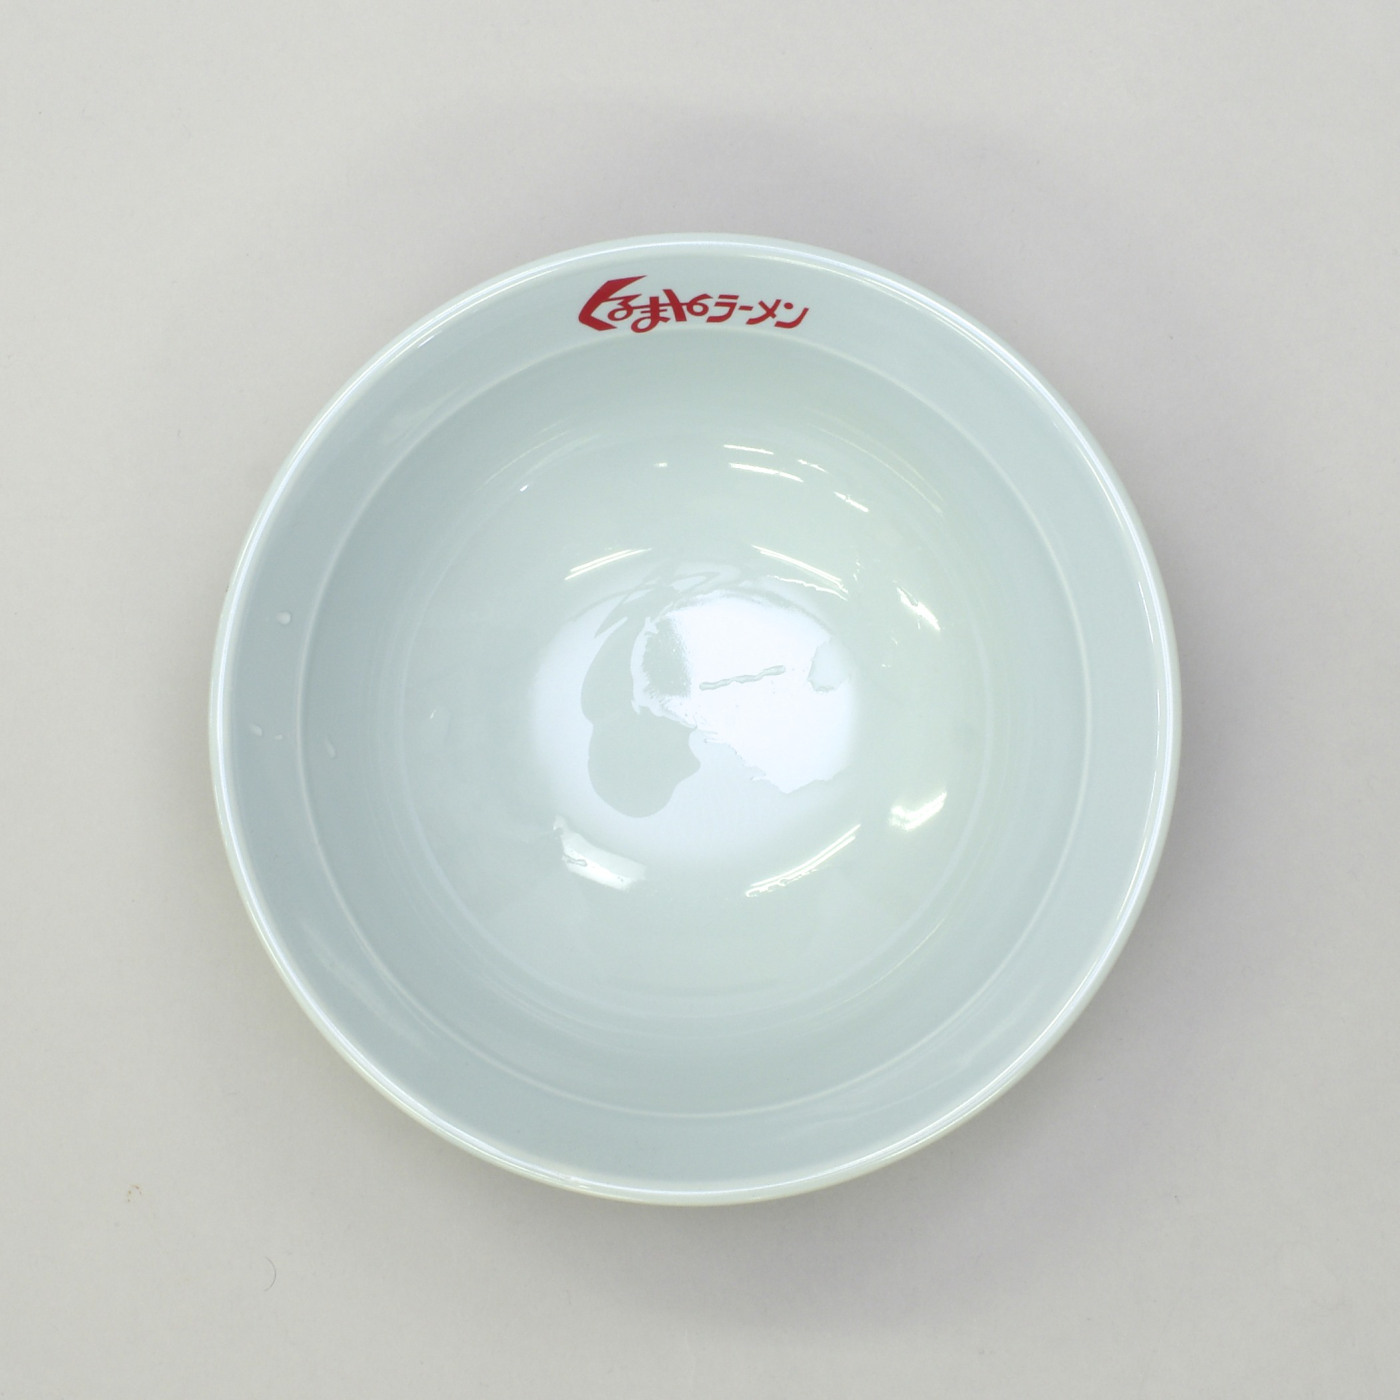 Customized Ramen Bowl (Logo)